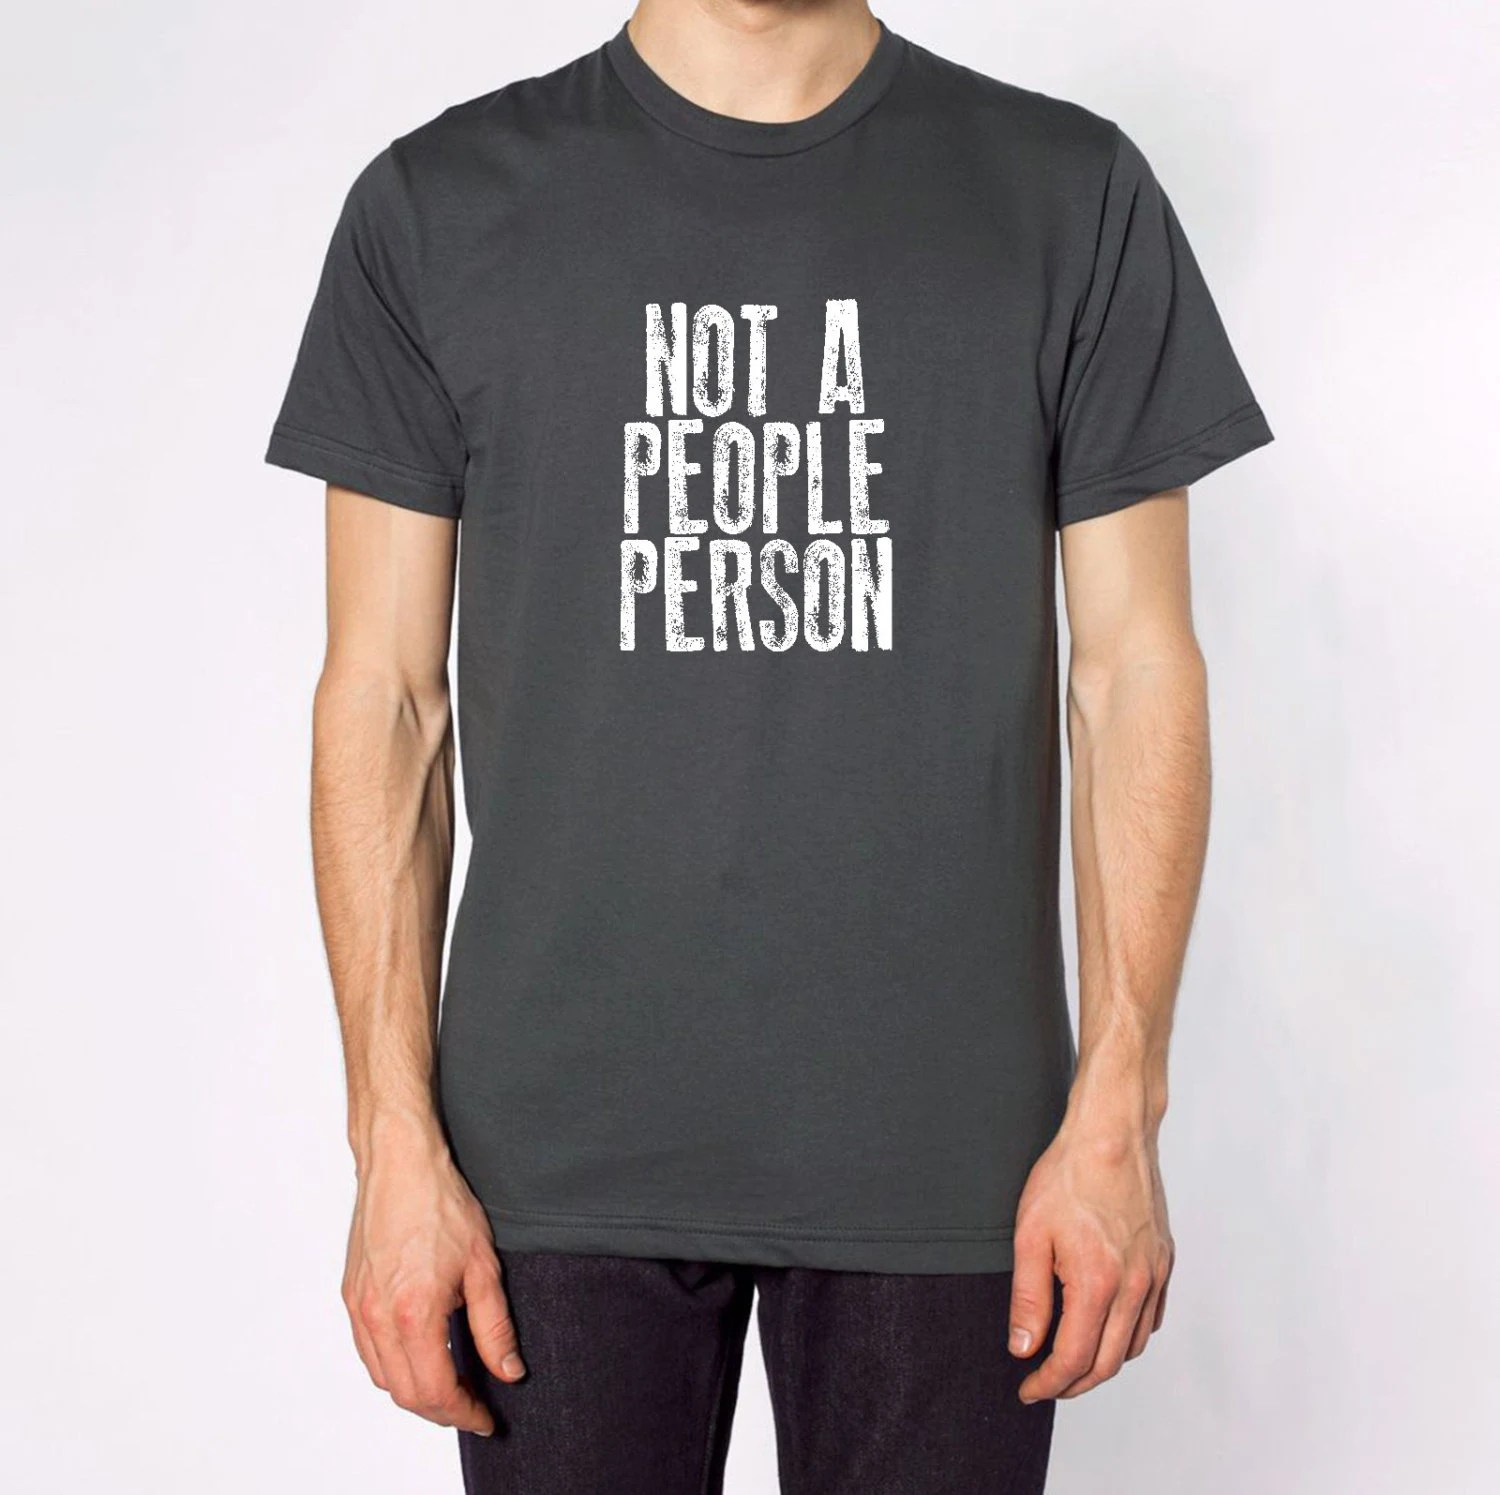 Not People Person